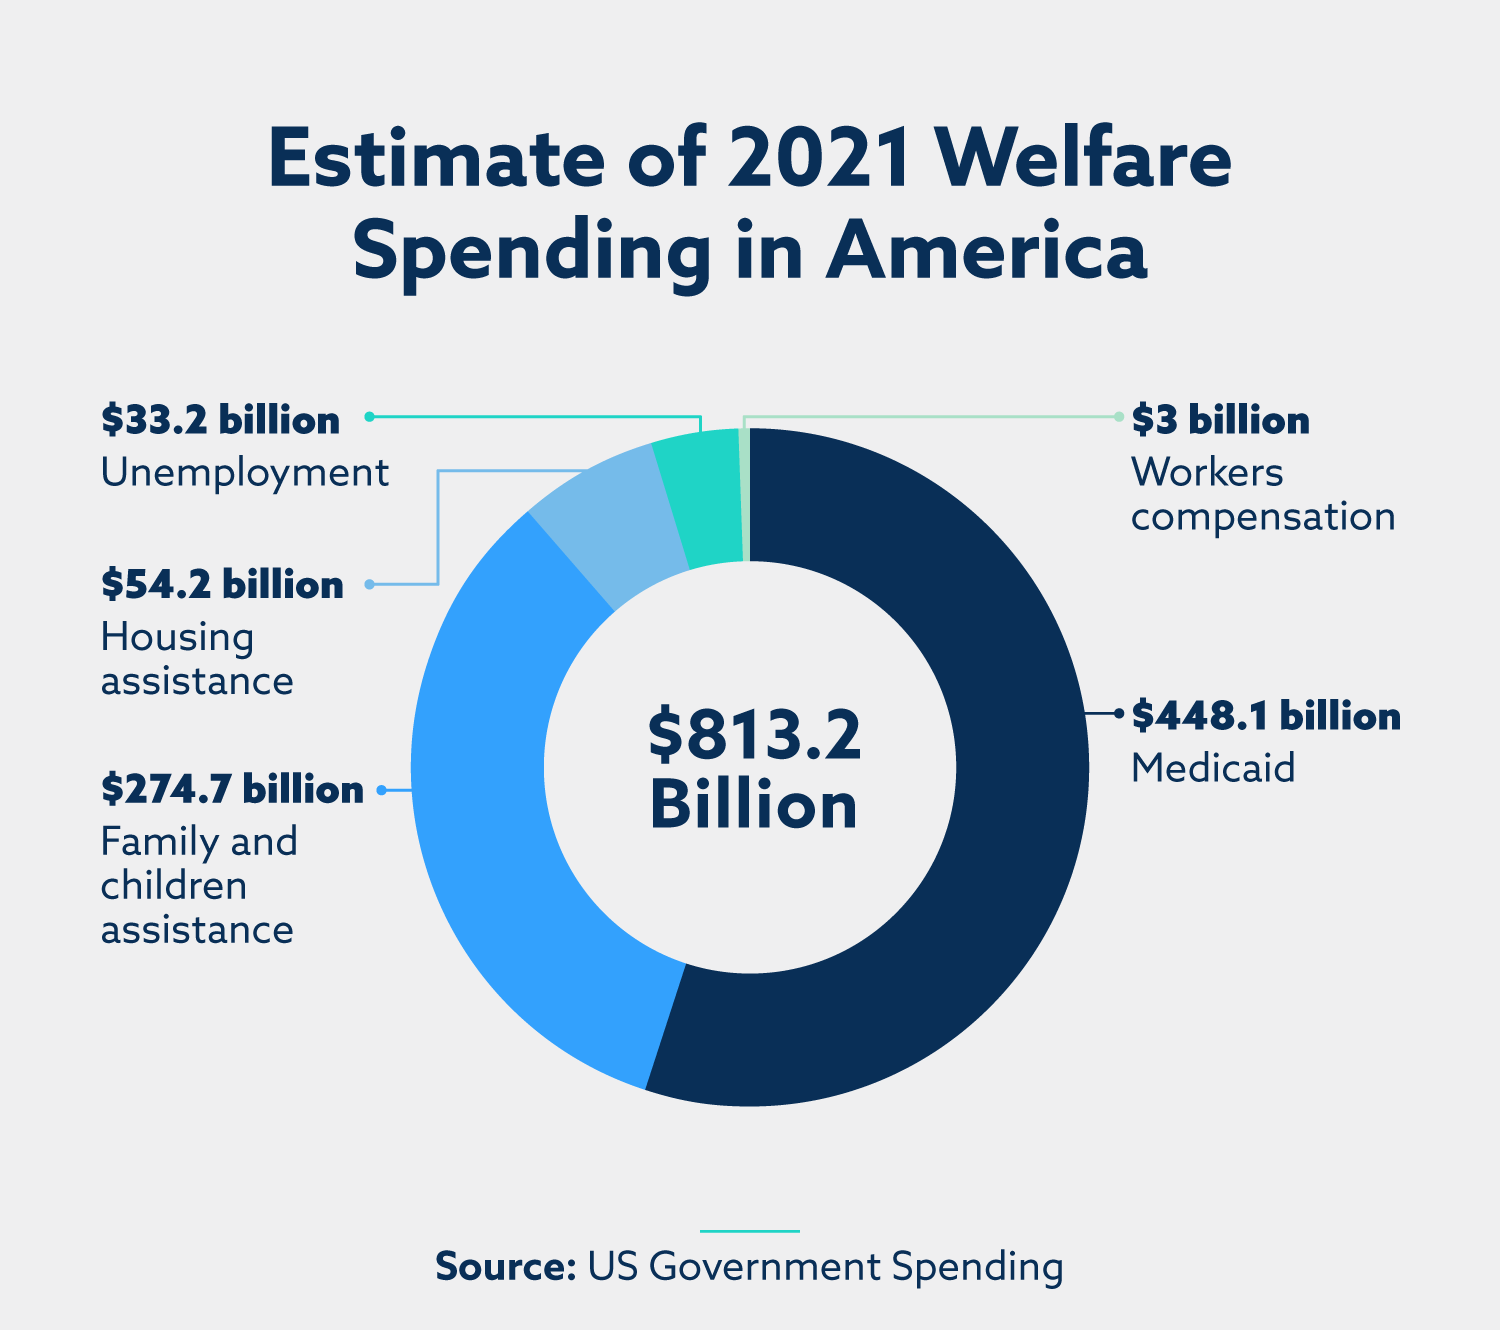 breakdown of estimated welfare spending in 2021